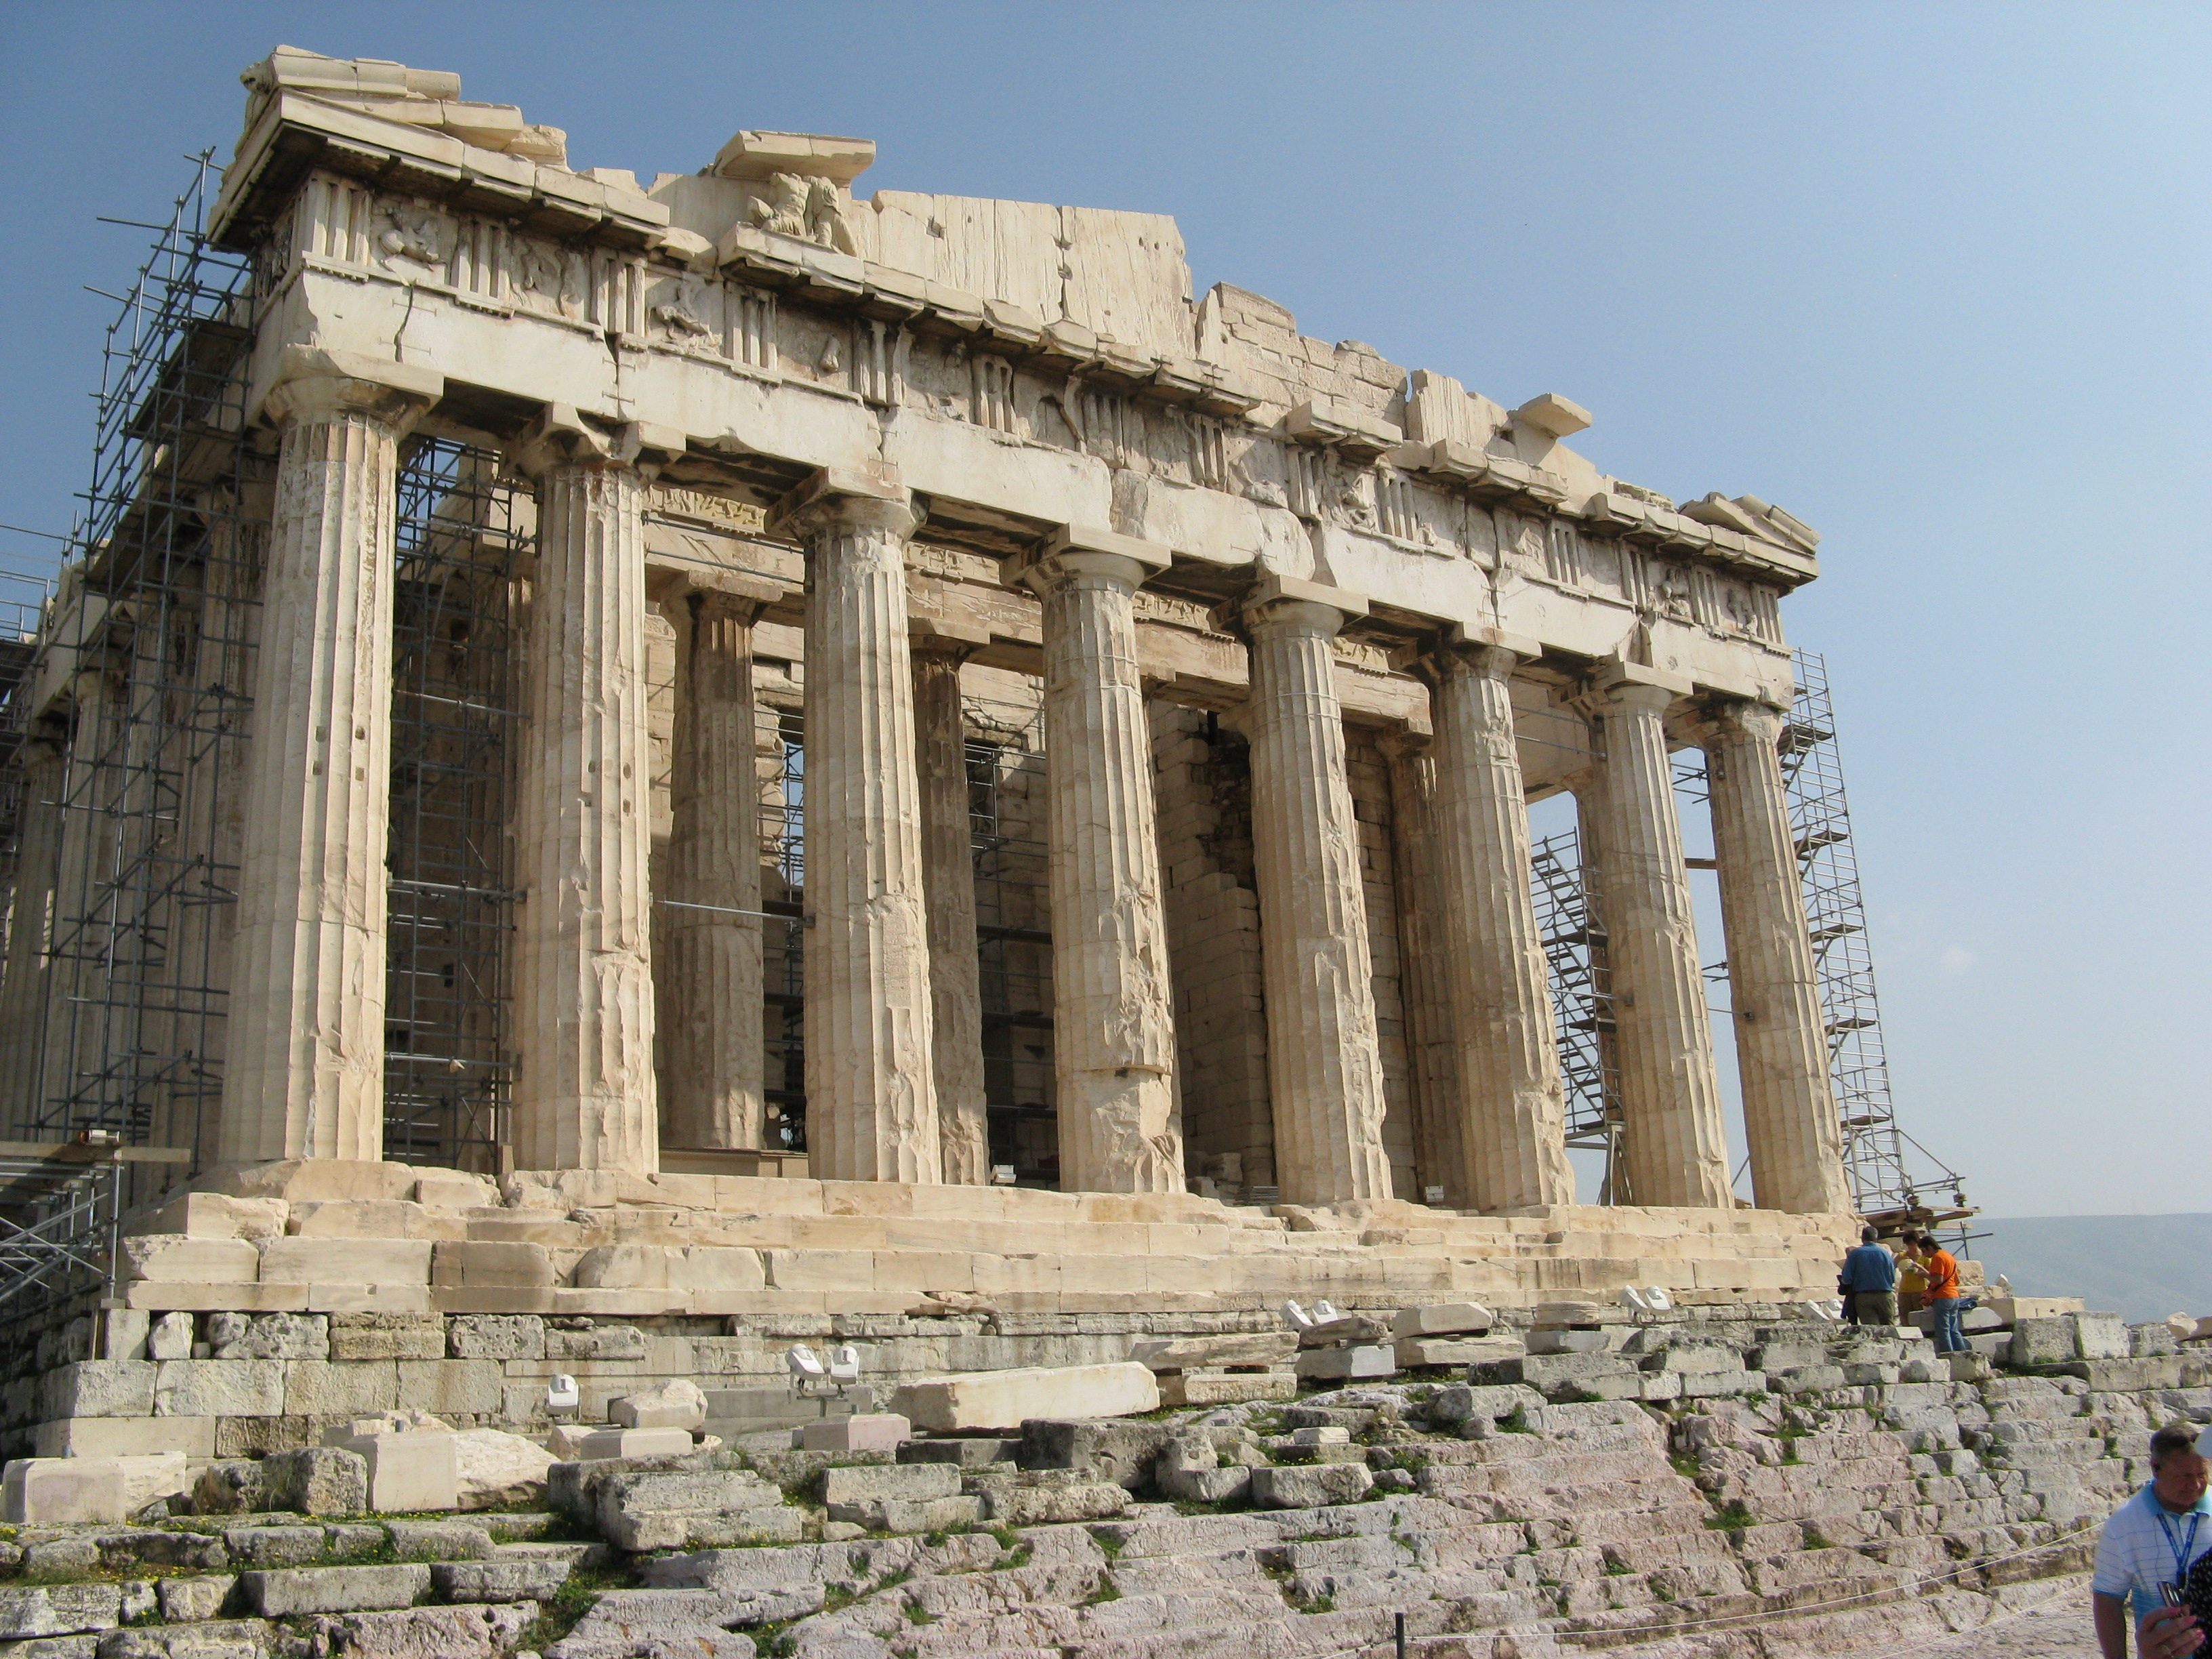 Live Periscope broadcasts on the #Acropolis